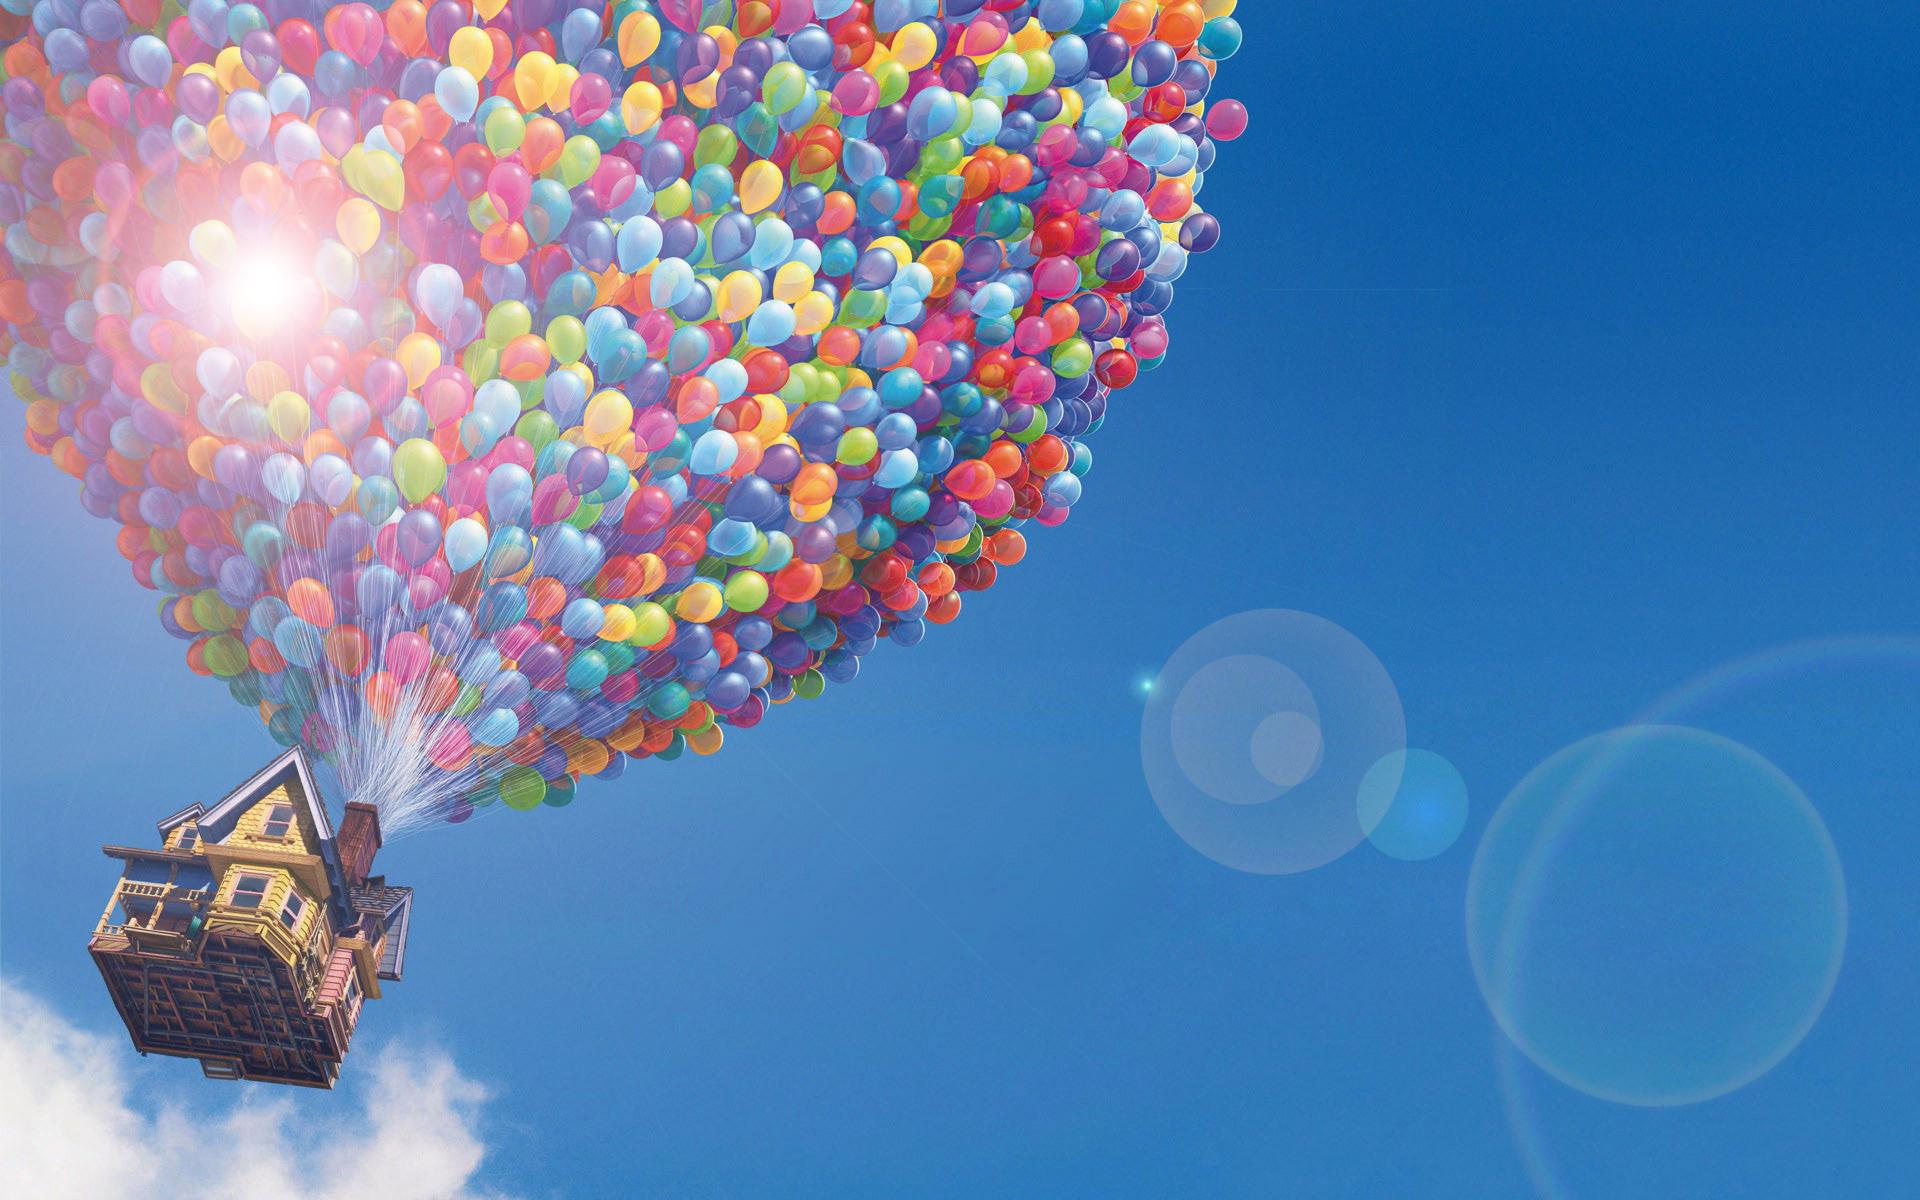 Animated Mobile Phone Wallpapers Flowers Up Disney House Balloons Light Hd Wallpaper Movies And